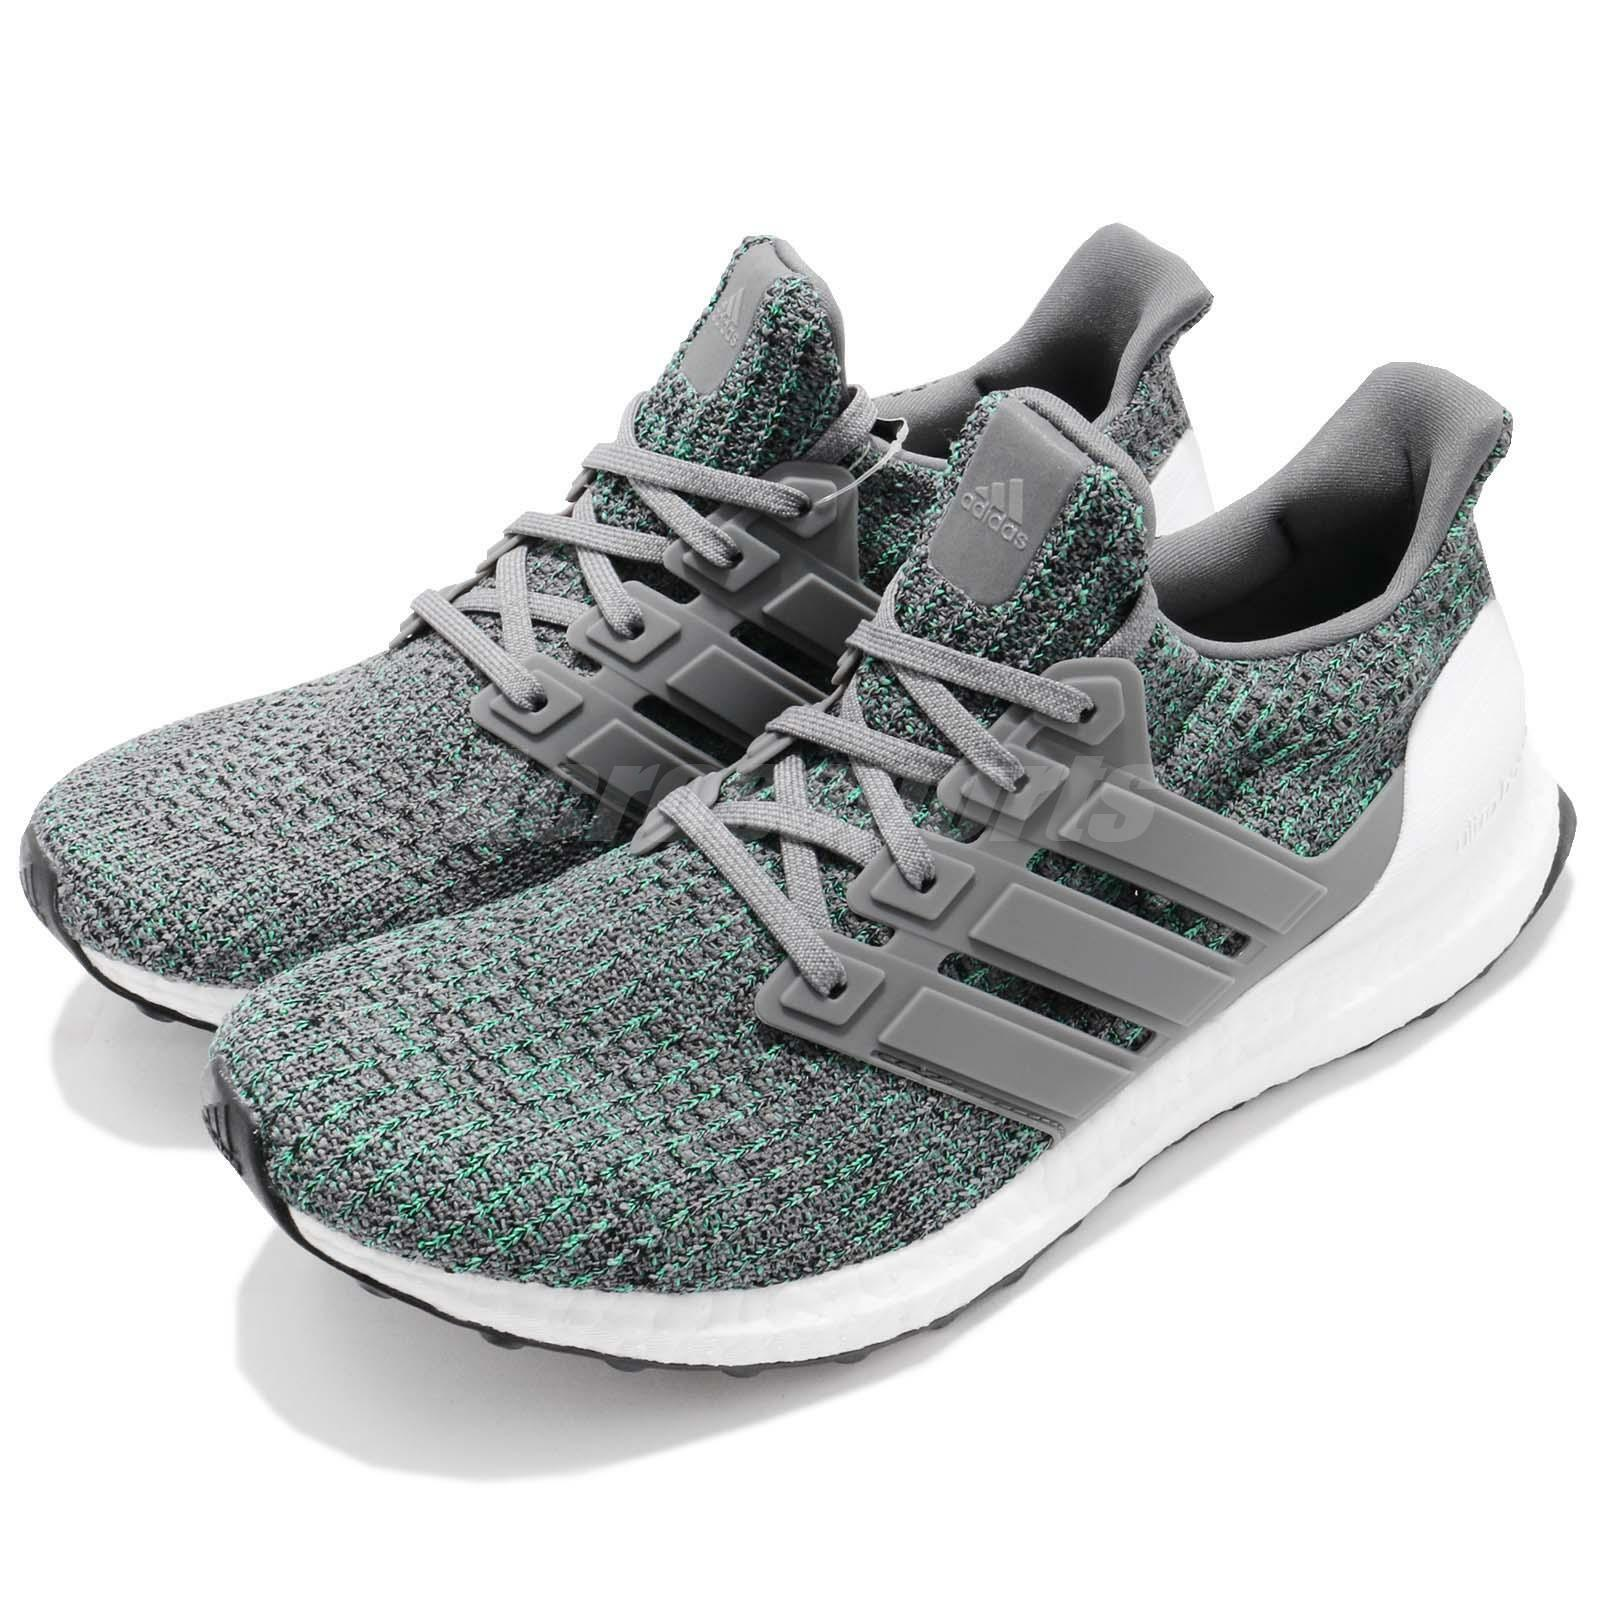 adidas UltraBOOST 4.0 Gris Continental Hire Gris 4.0 Four Men Running Chaussure Basket CP9251 7e02e4